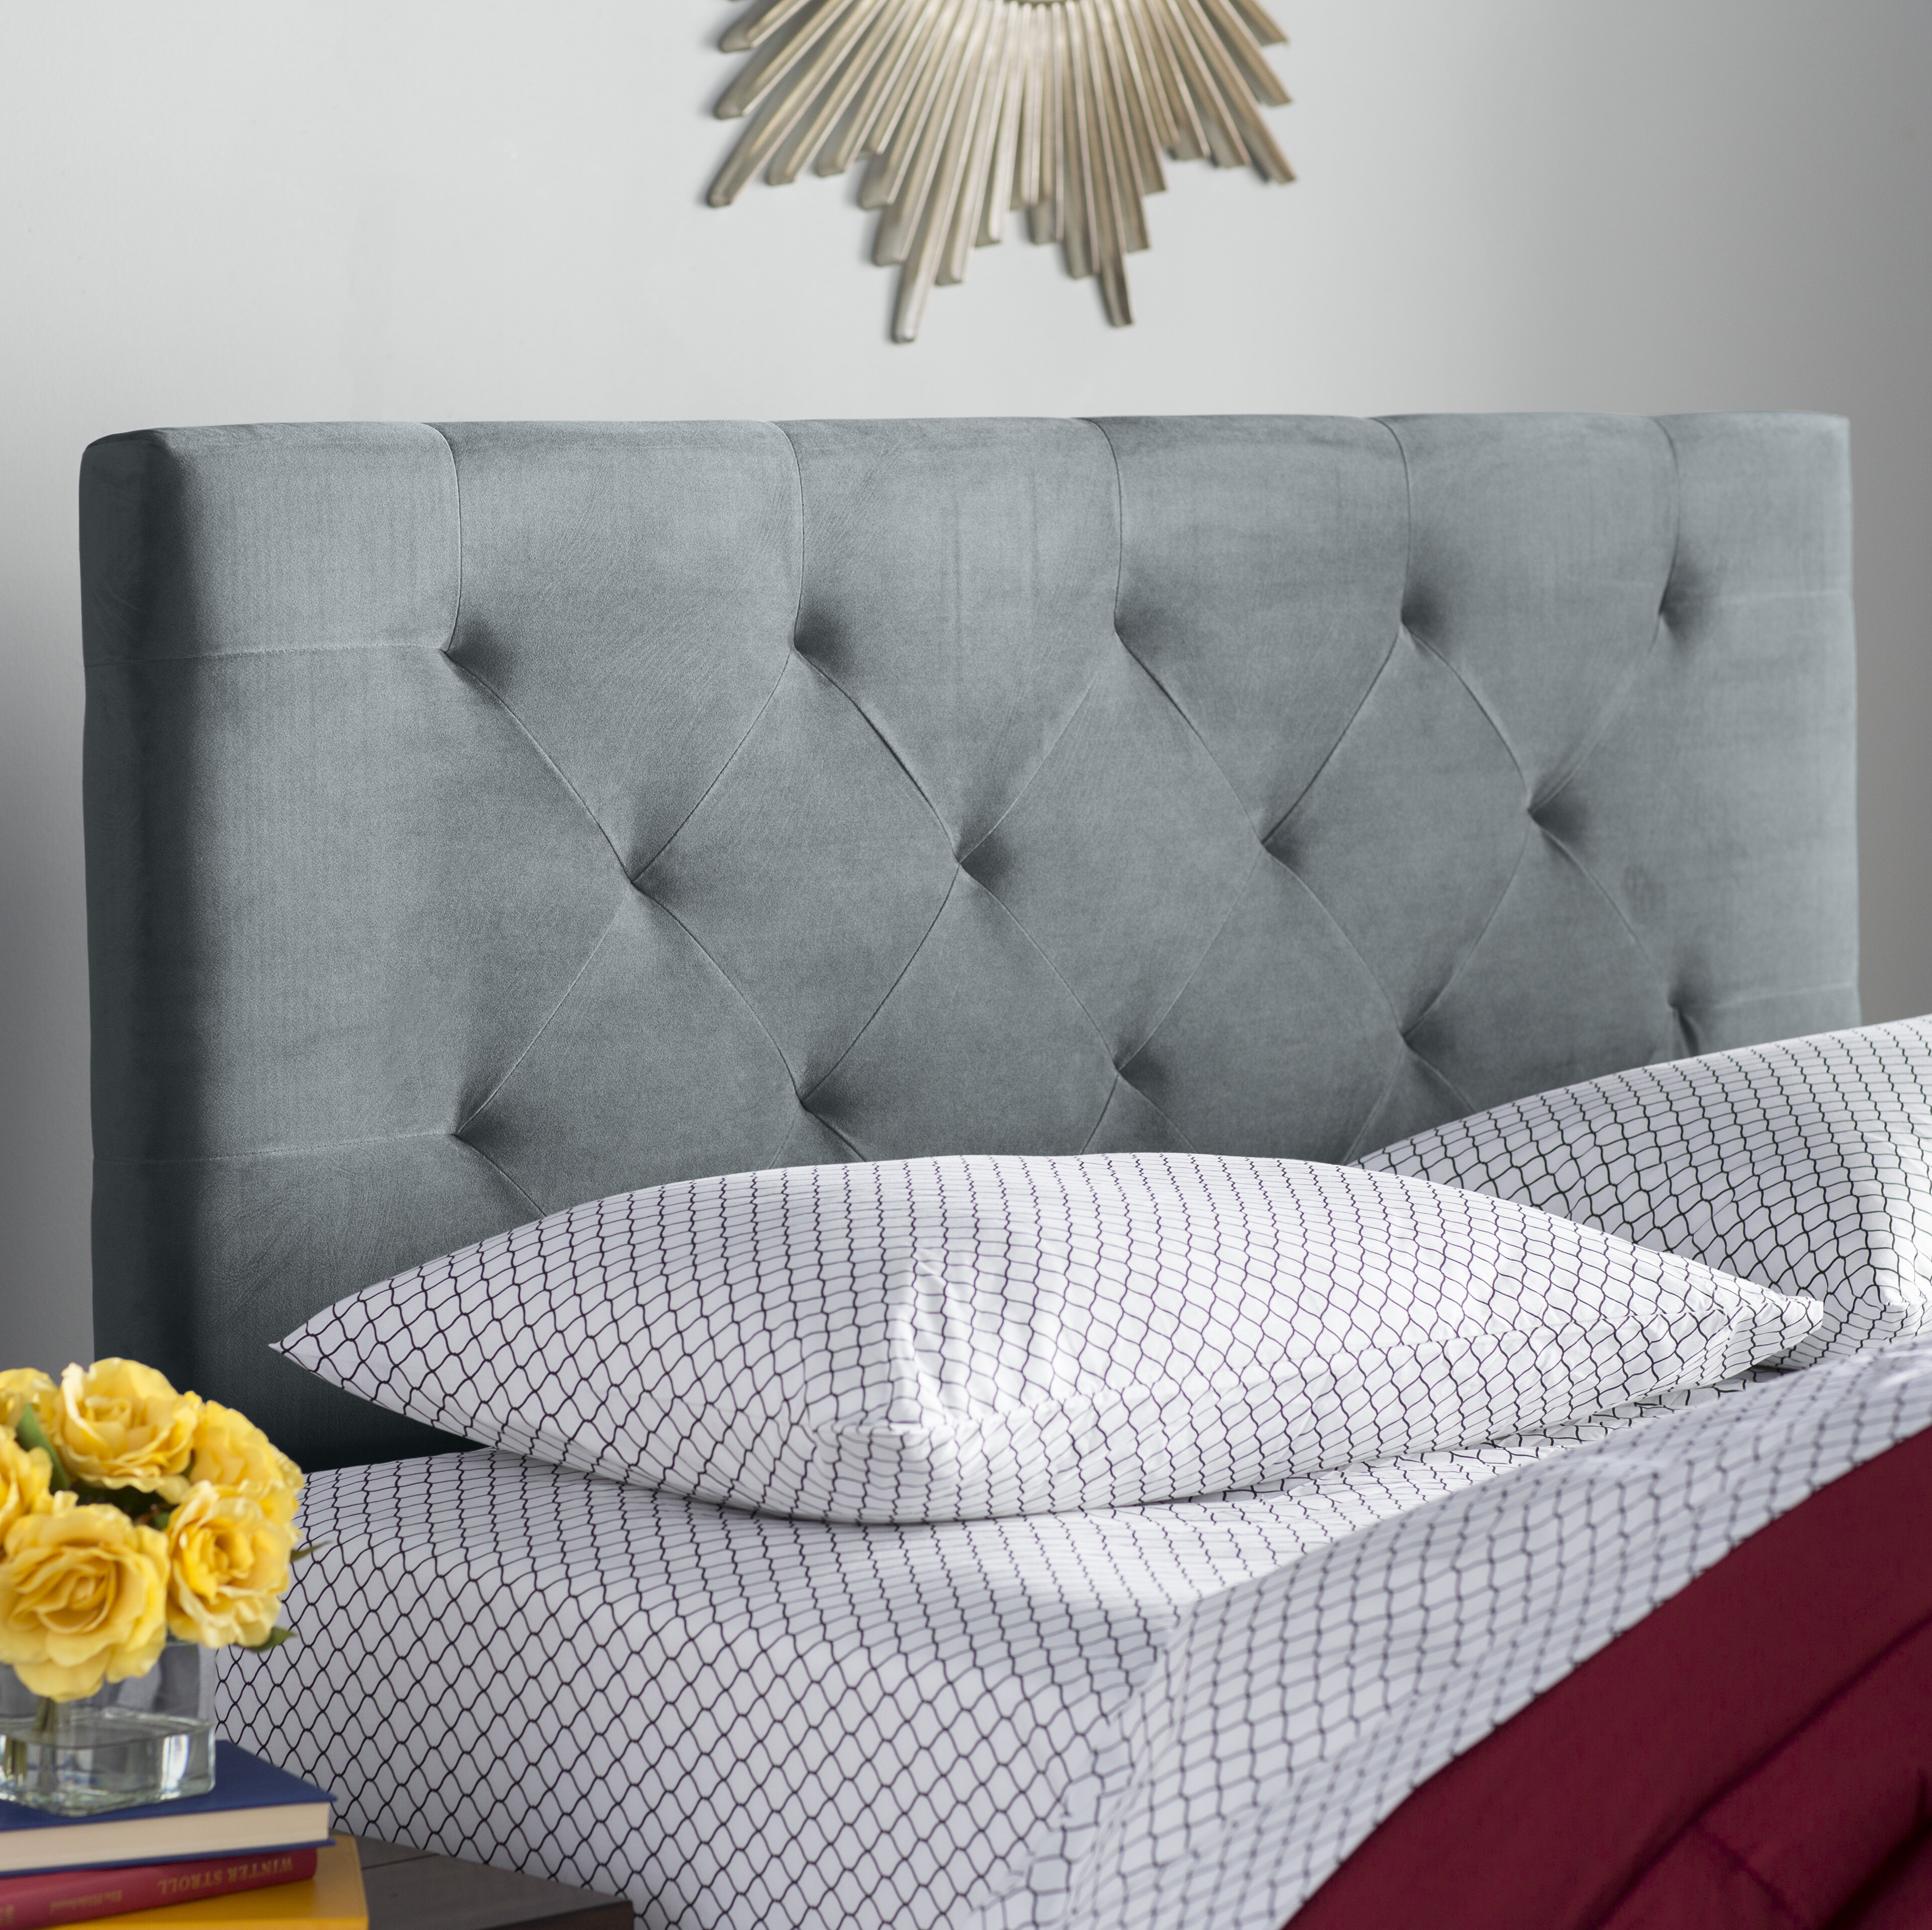 upholstered flooringtreatment concrete adjustable cheap and jute with for stunning comforter wool grey also frames headboards rug trends frame headboard including bed king beds